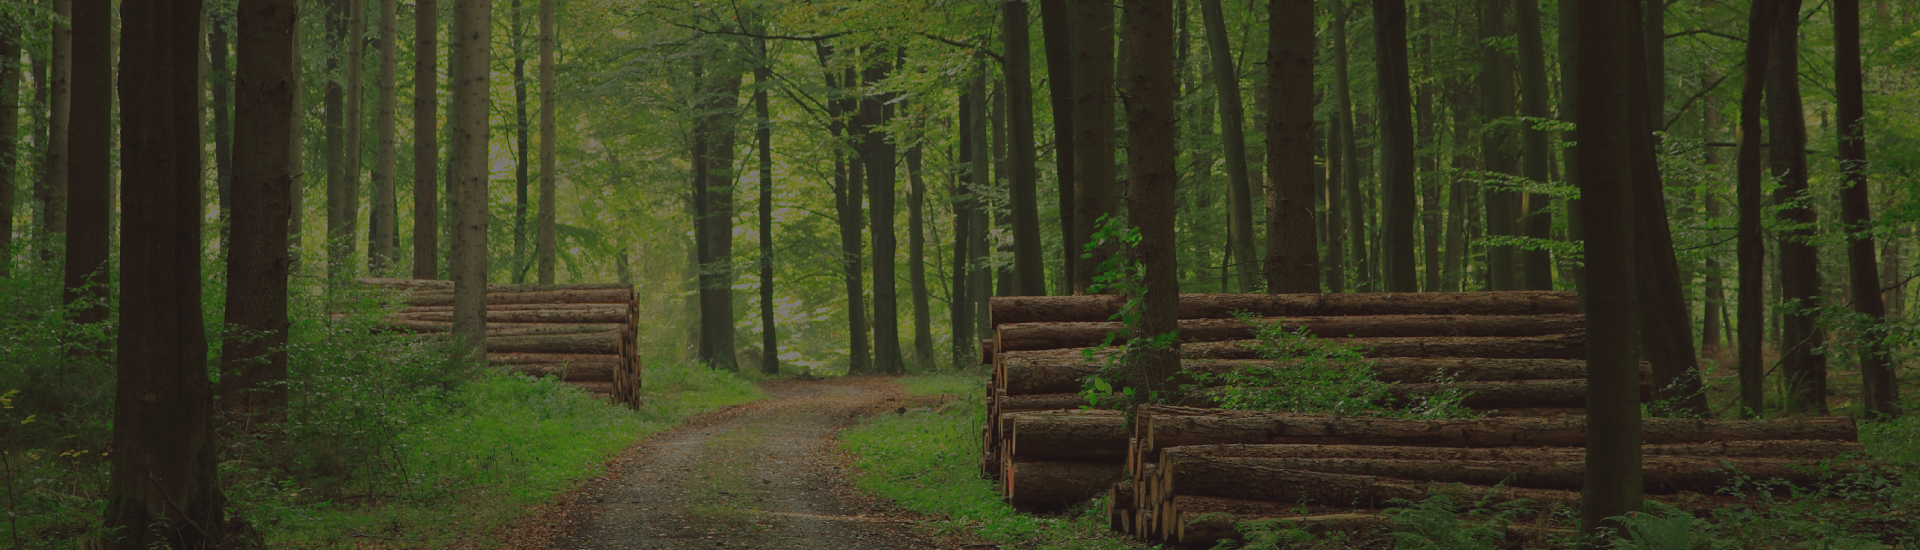 Forestry Homepage IT